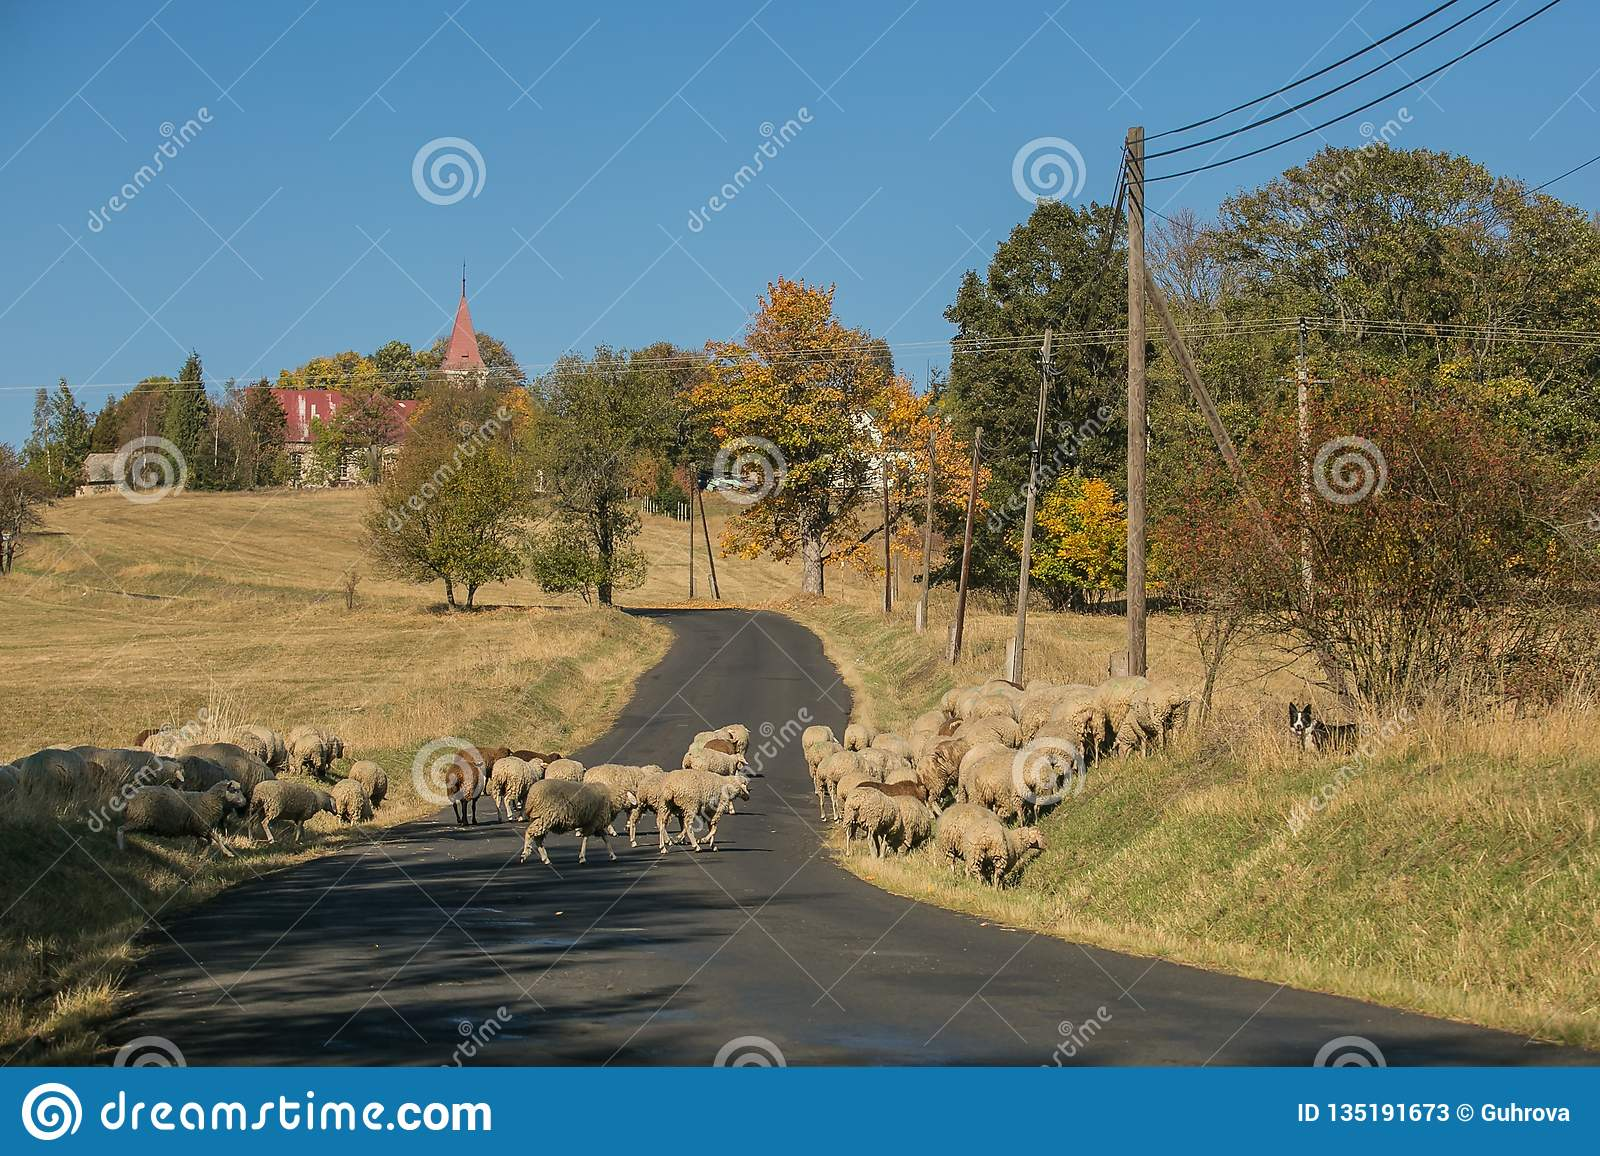 Rural autumn landscape and a herd of sheep crossing road